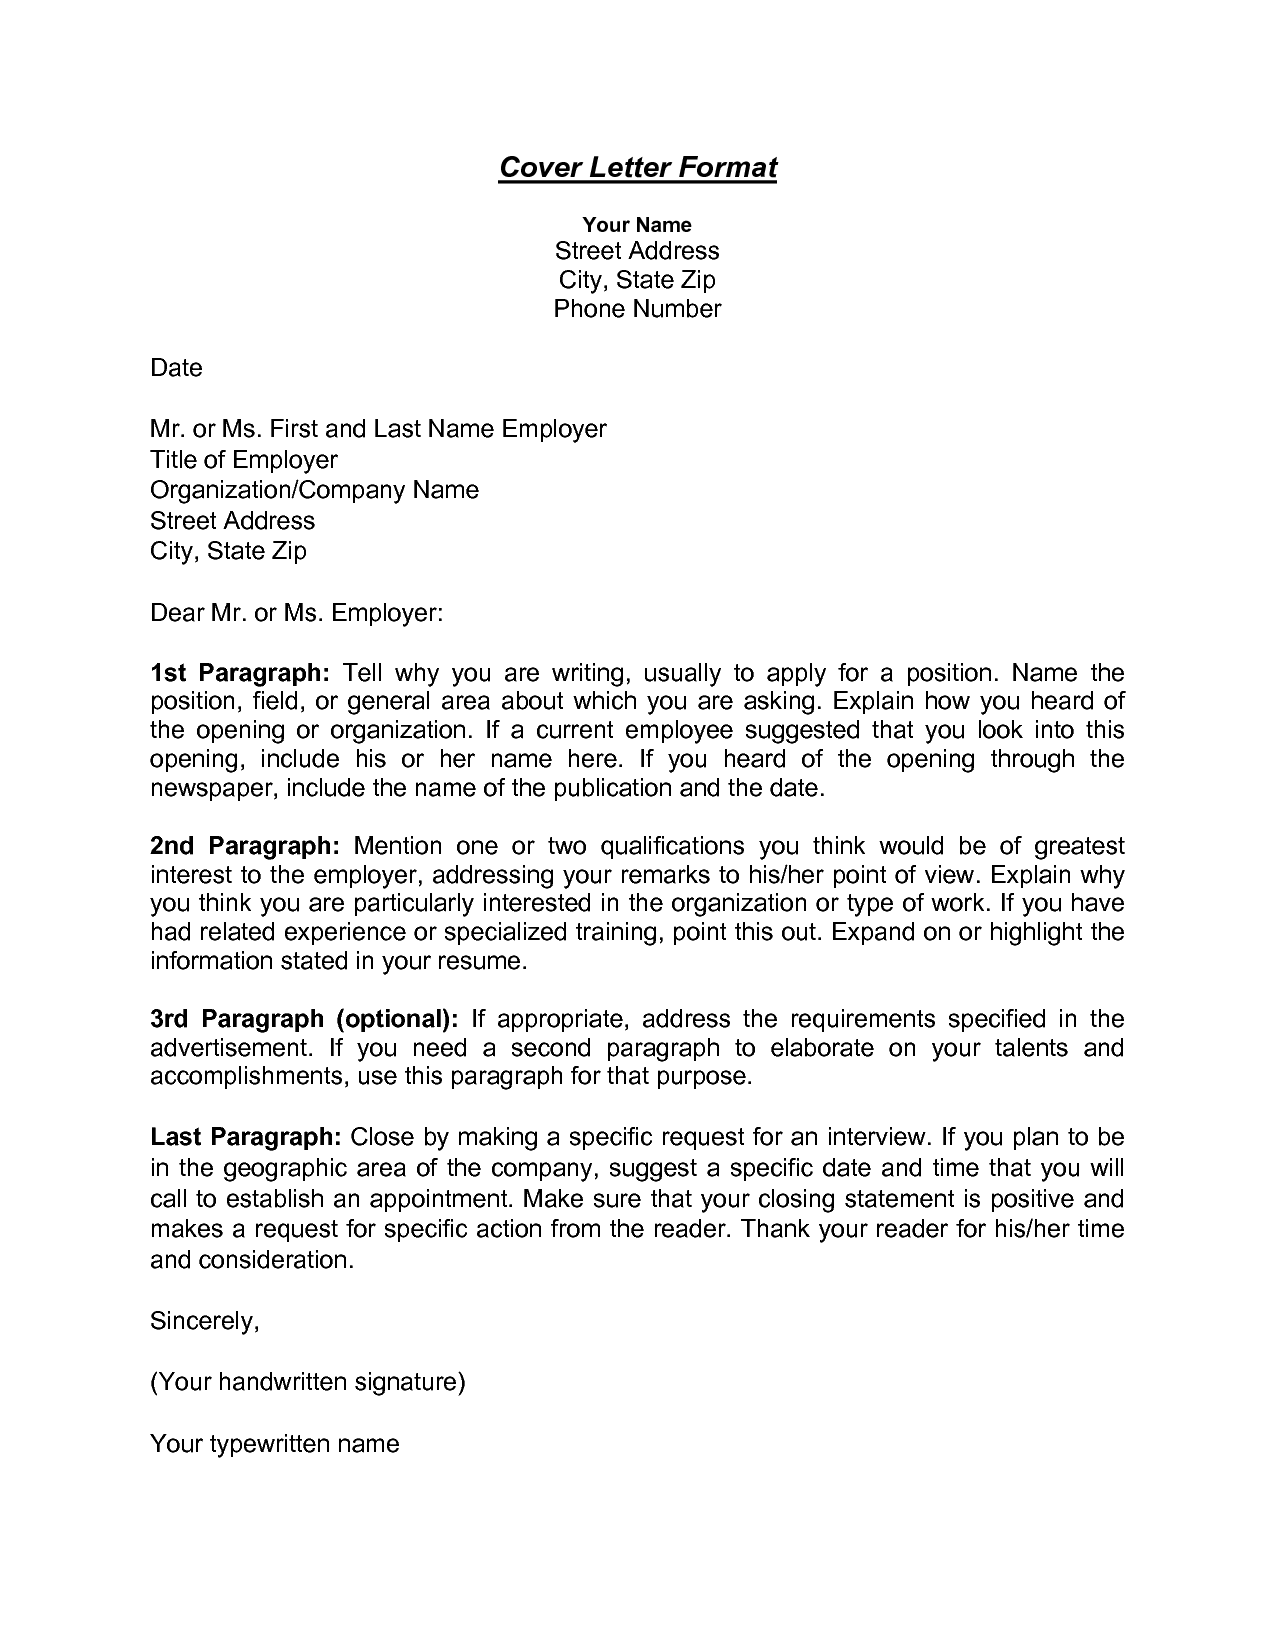 address cover letter to unknown tomlavertynet how to address a cover letter with no name - How To Address A Cover Letter Without A Contact Name